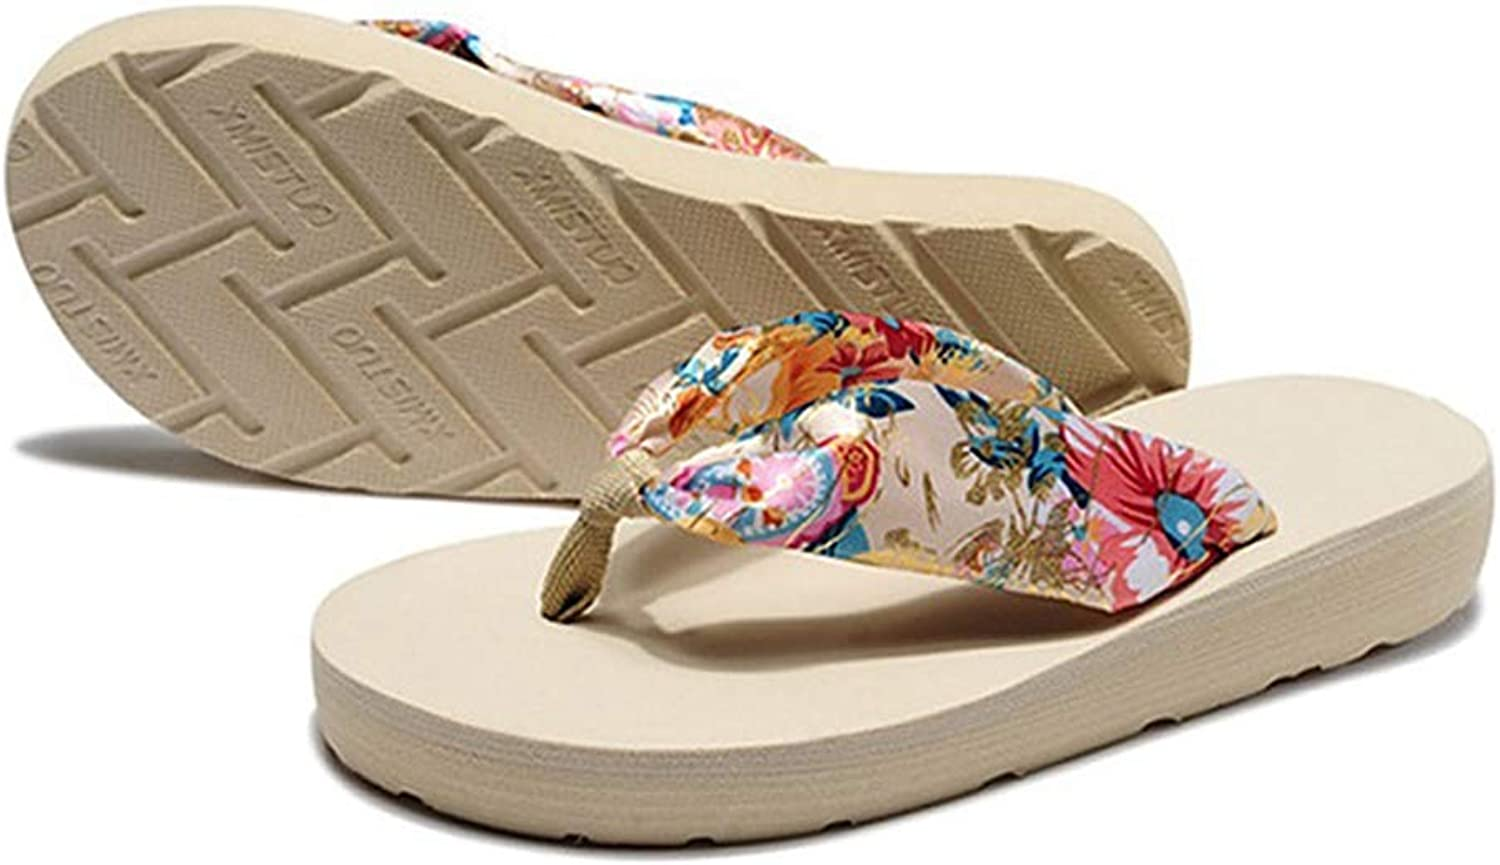 Btrada Summer Bohemian Satin Printing Beach Slippers Women Florals Casual Wedge Sandals Flip Flops